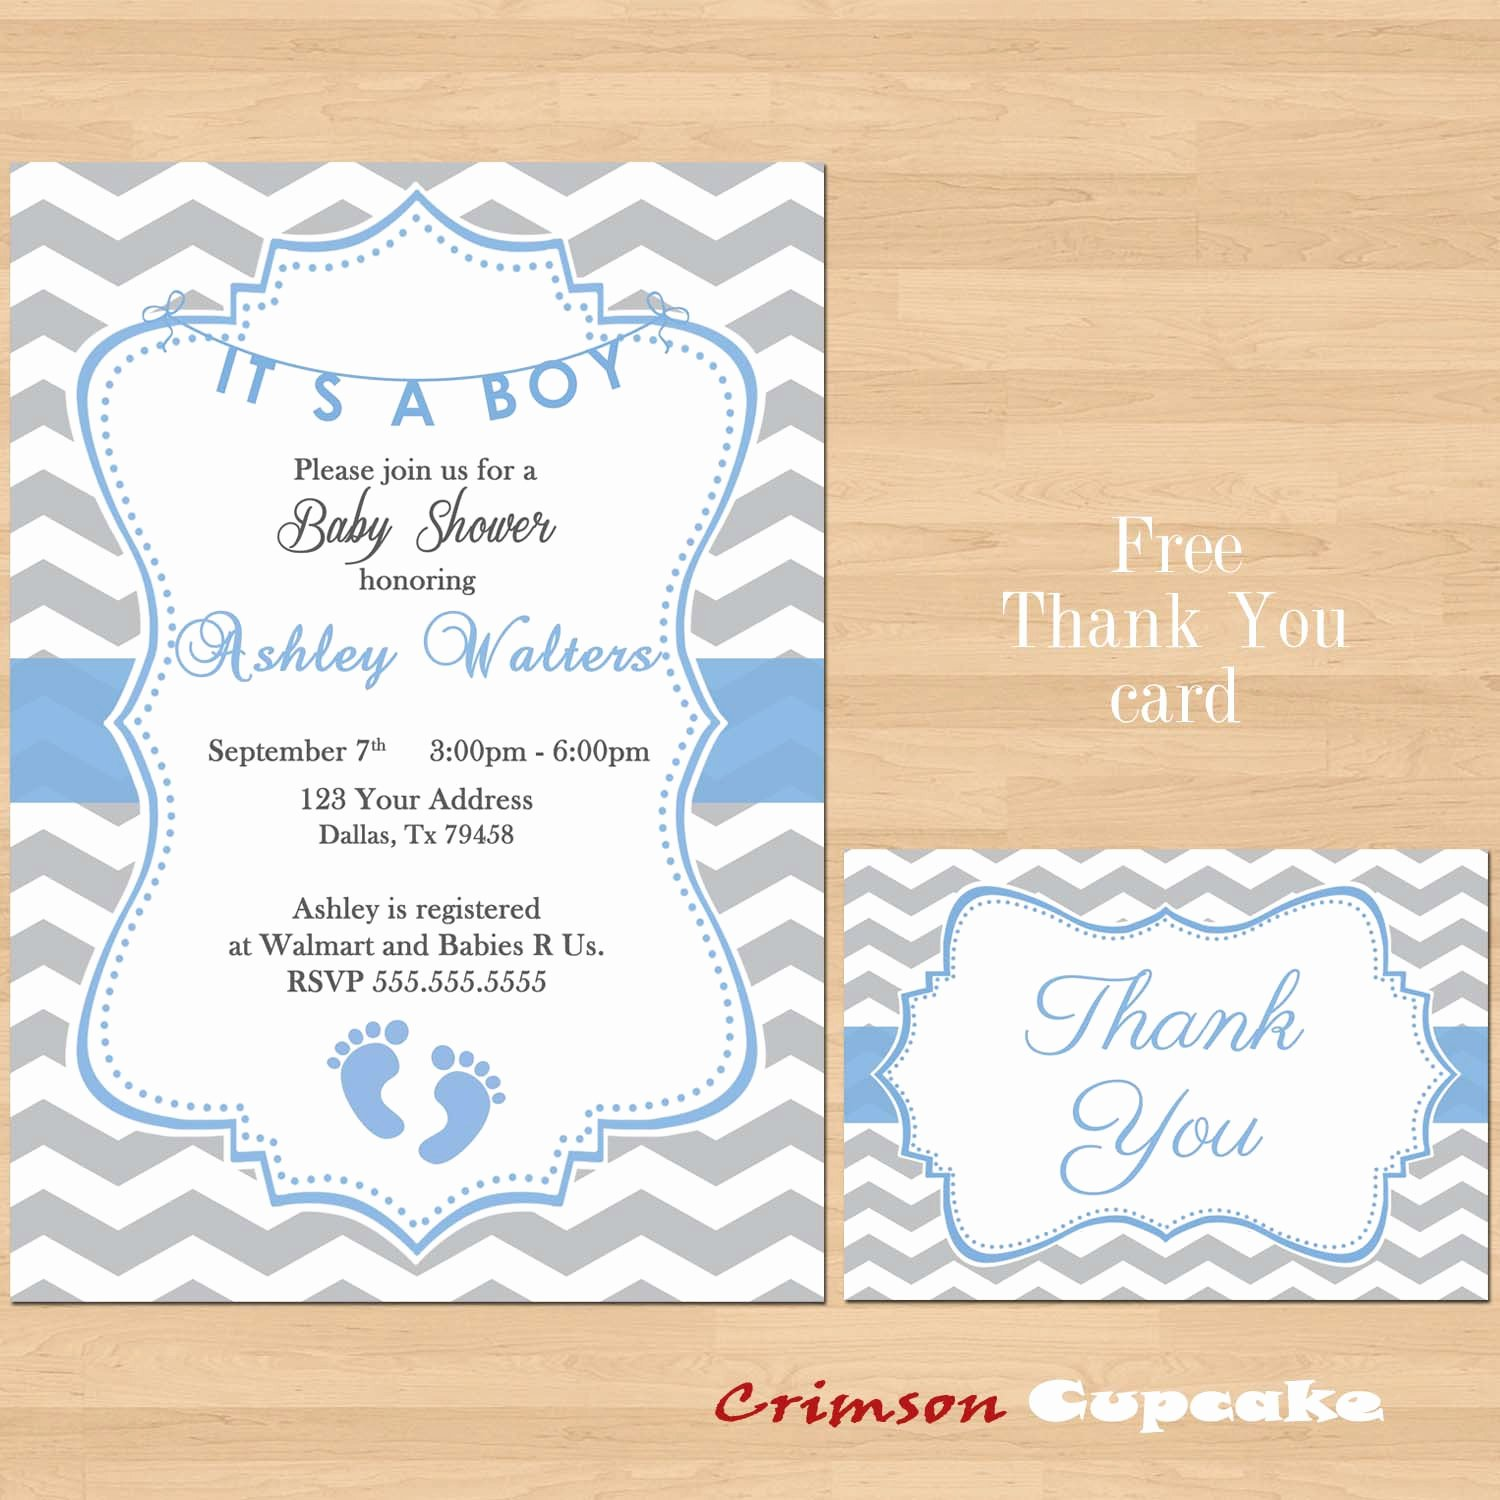 Free Printable Baby Shower Card Luxury Printable Baby Shower Blue Grey Chevron Invitations Boy Gray